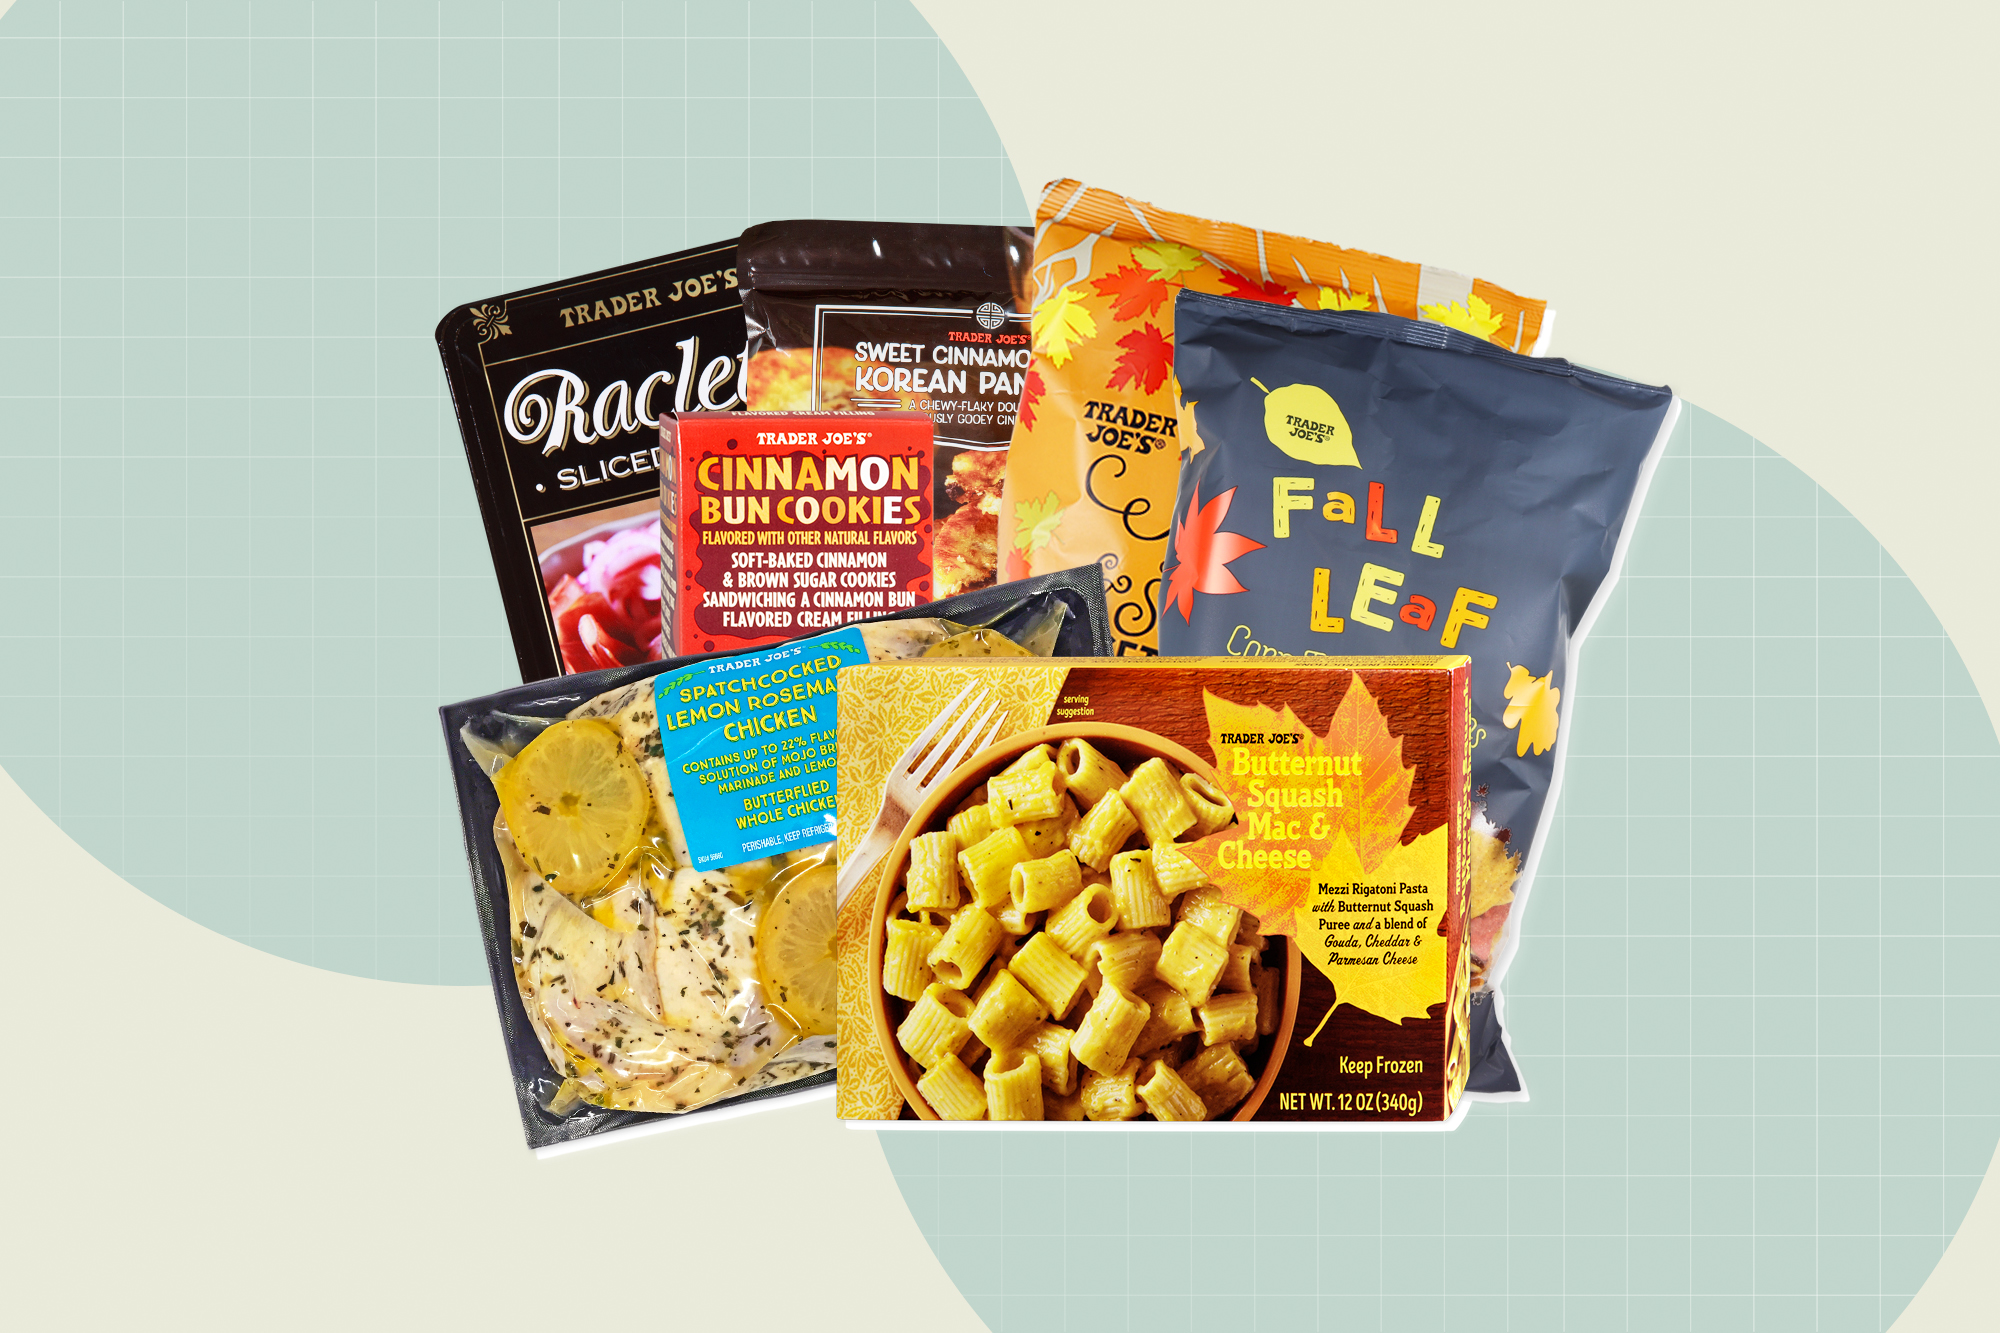 7 Trader Joe's products on a designed background